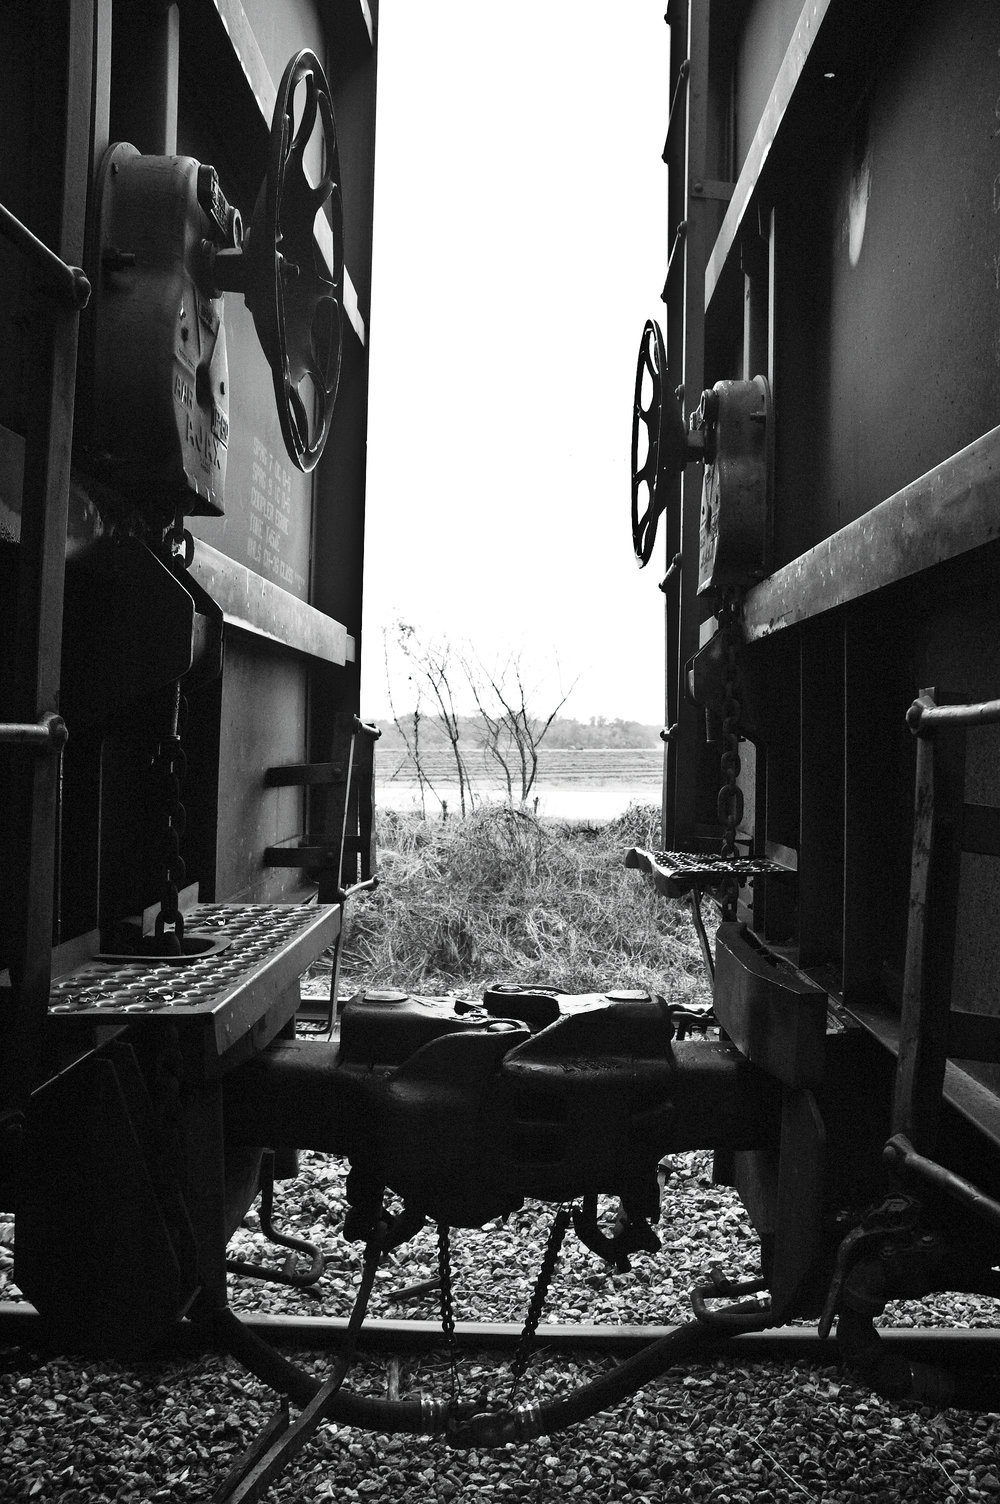 Train Cars Hitched